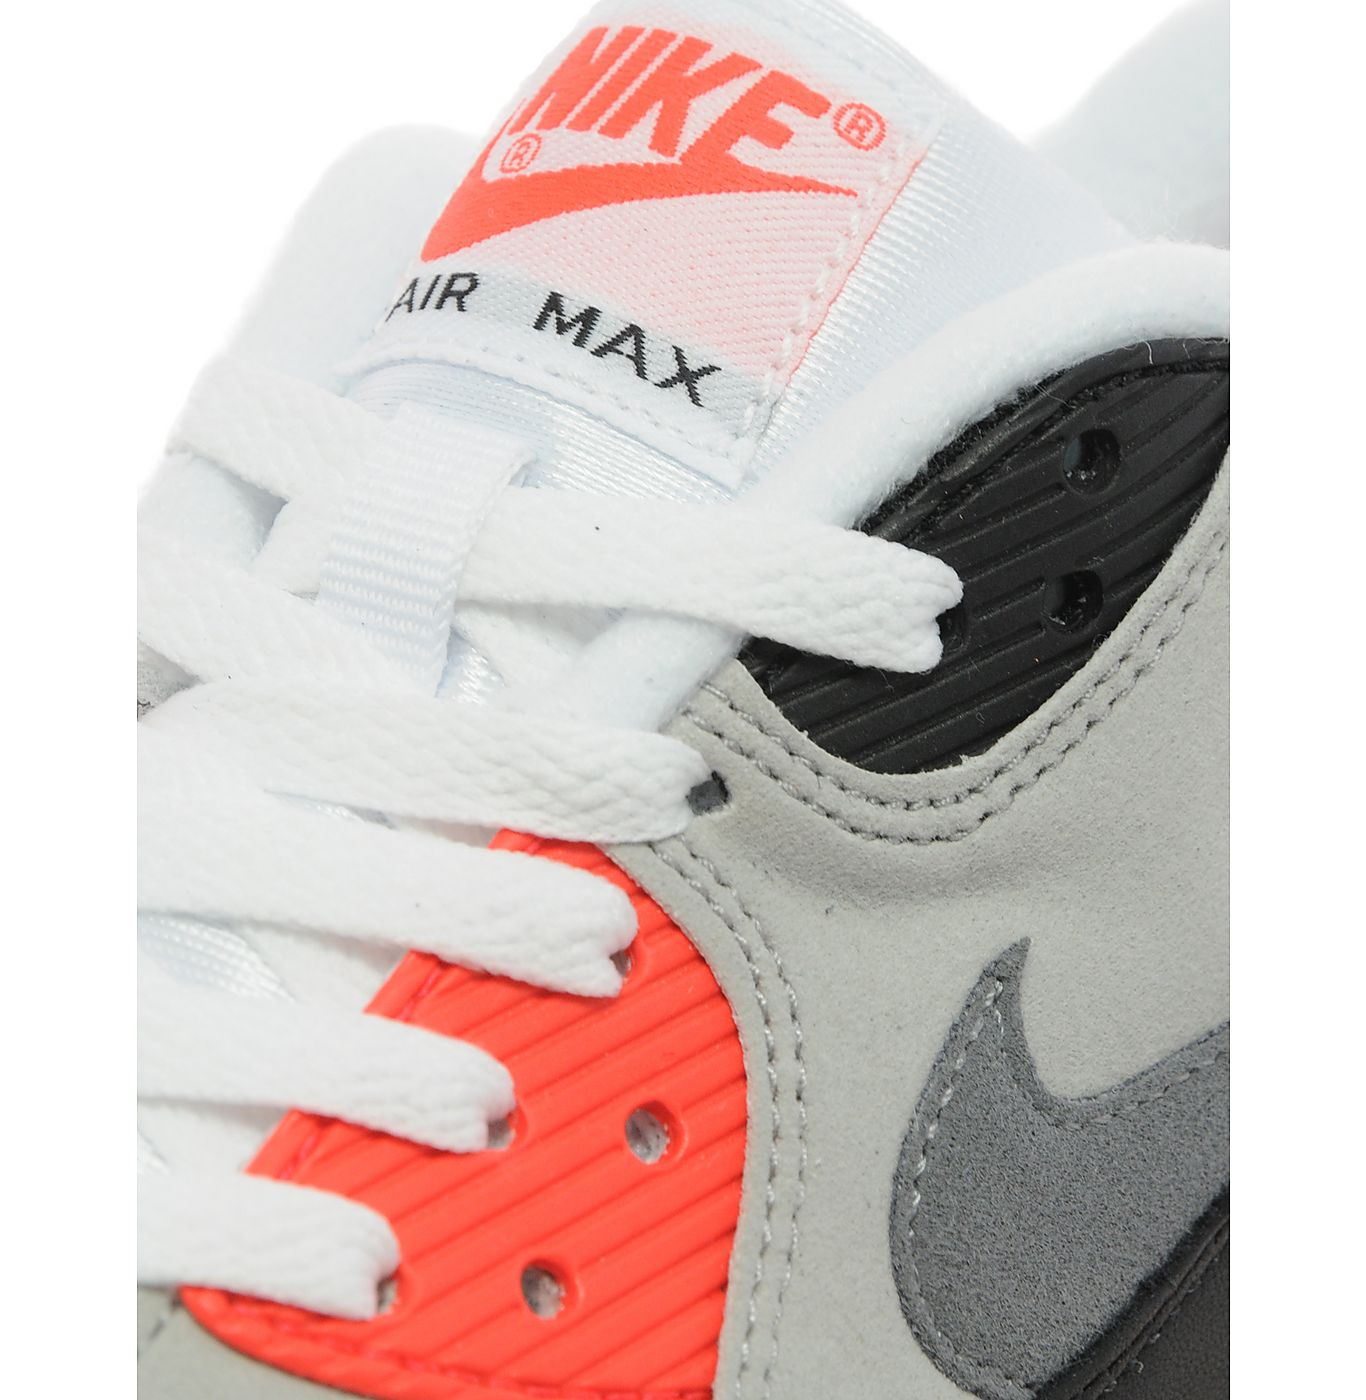 release date ad407 f166d Nike Womens Air Max 90 OG